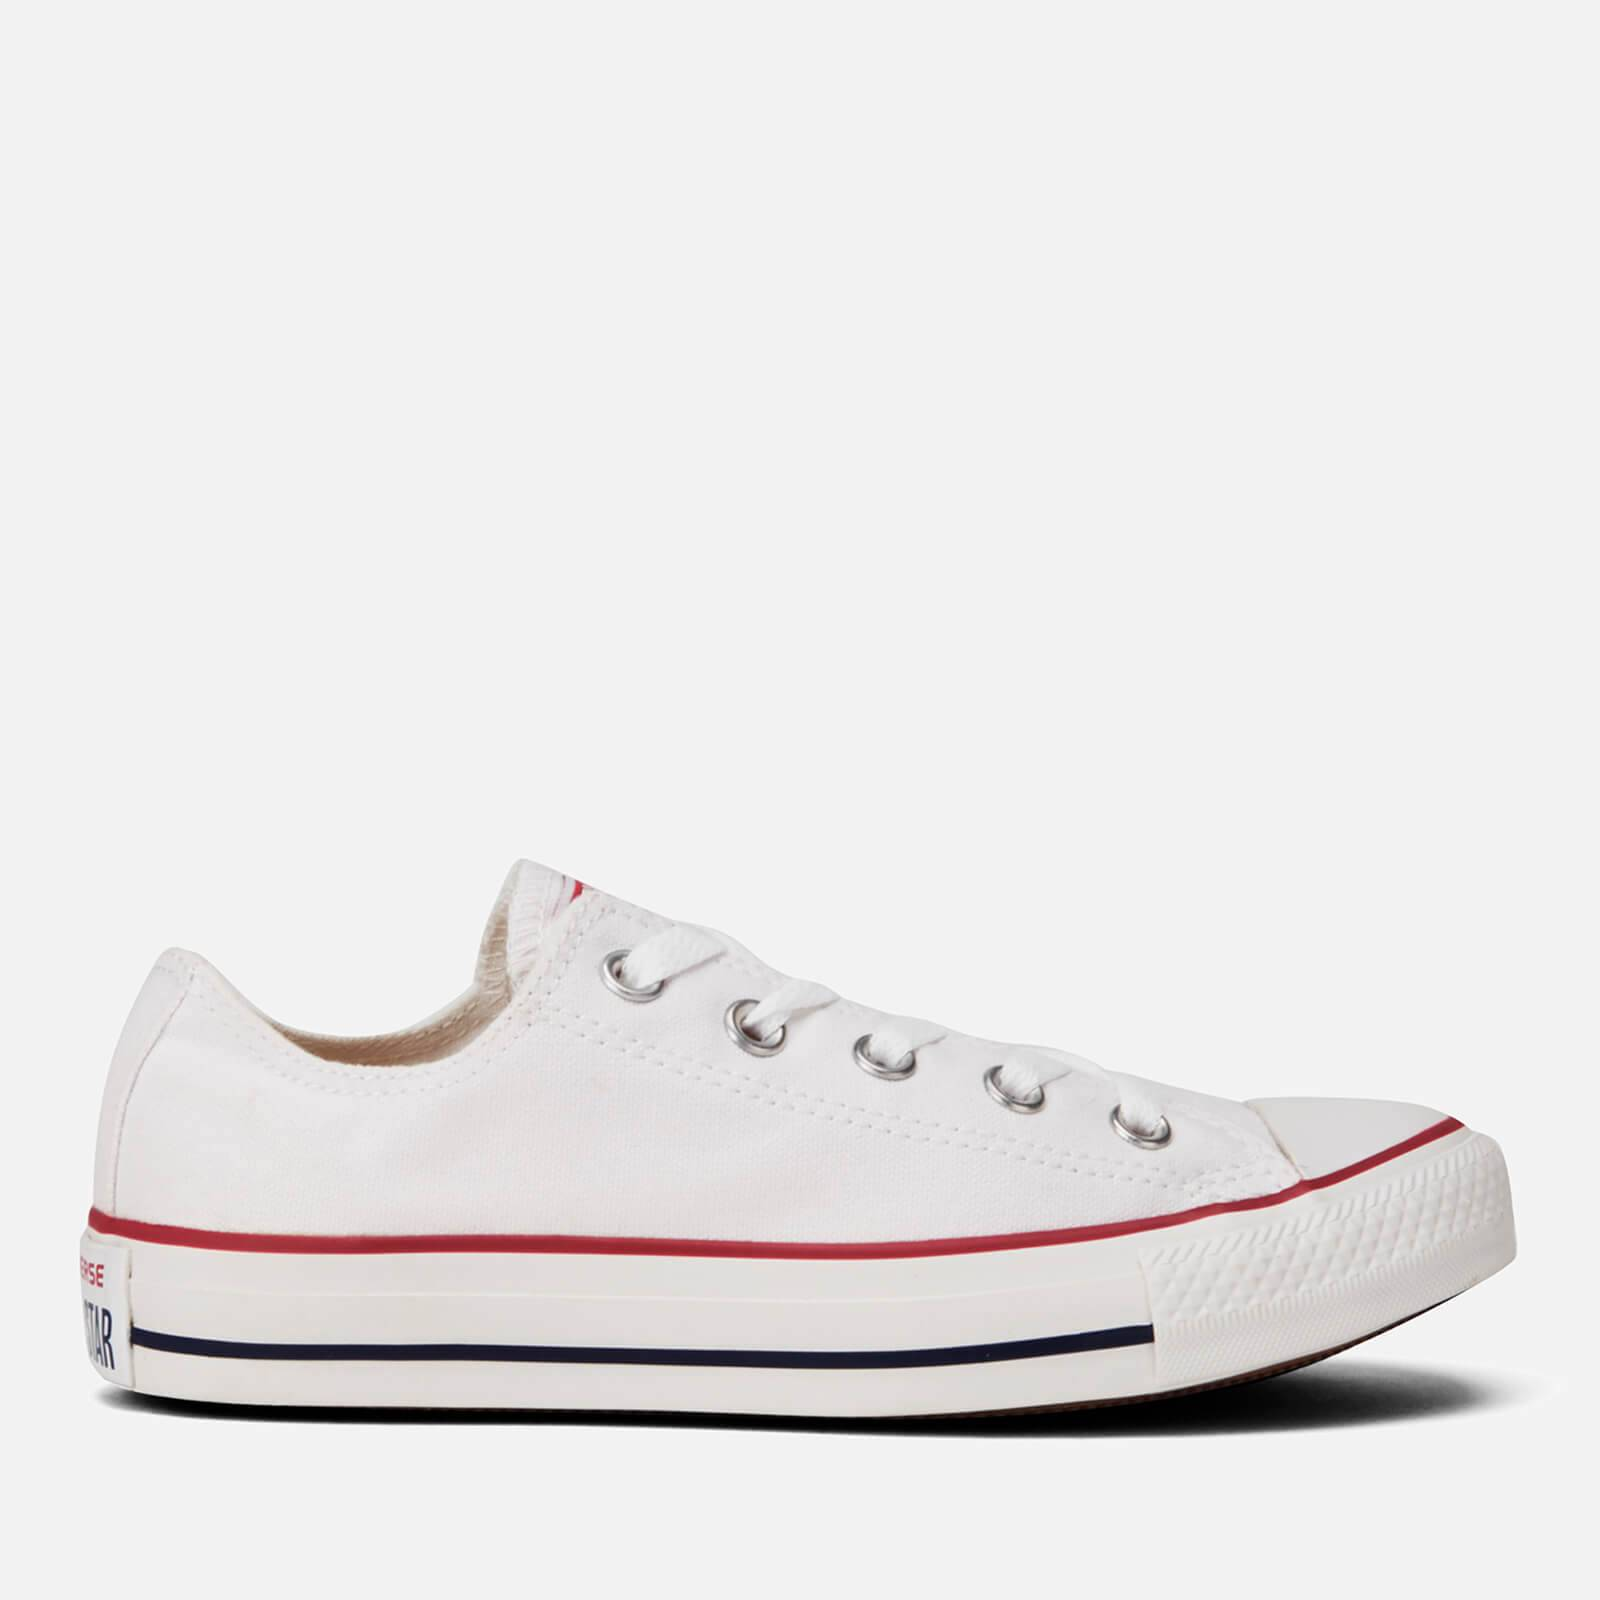 Converse Chuck Taylor All Star Ox Trainers - Optical White - UK 3